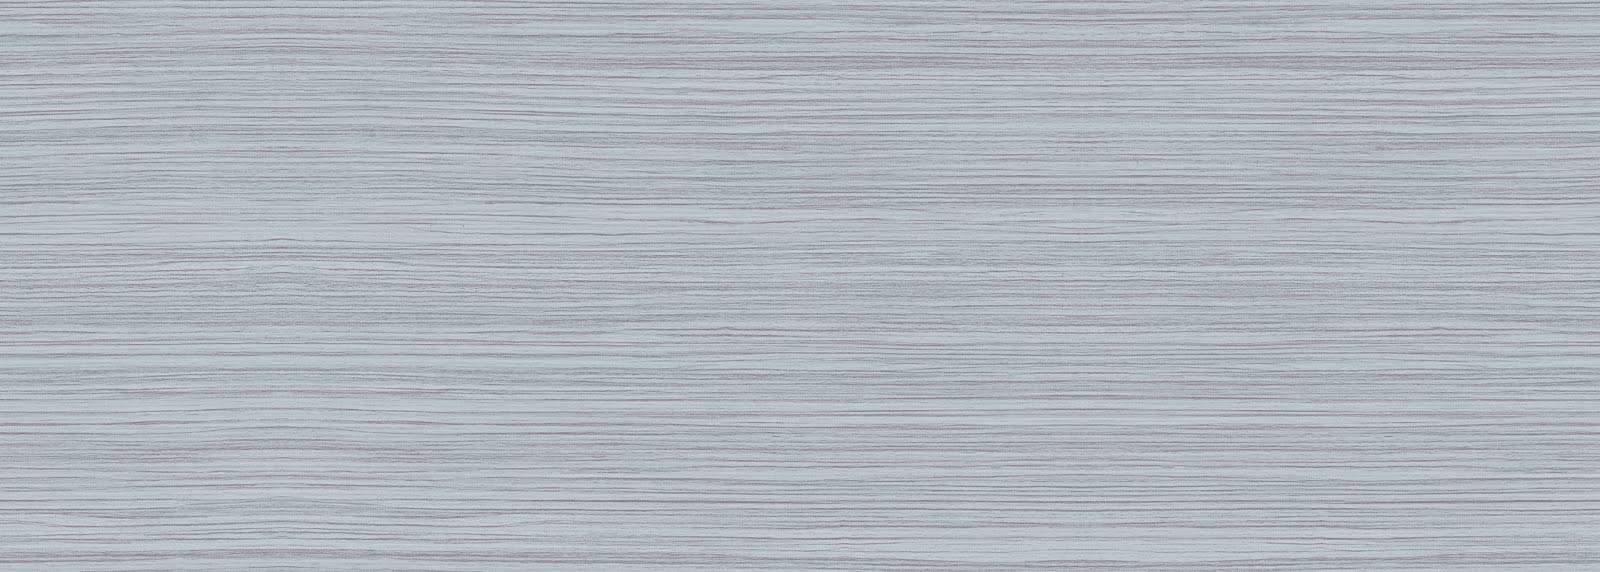 Seamless White Wood Texture Tileable Fine Wood Zebrano